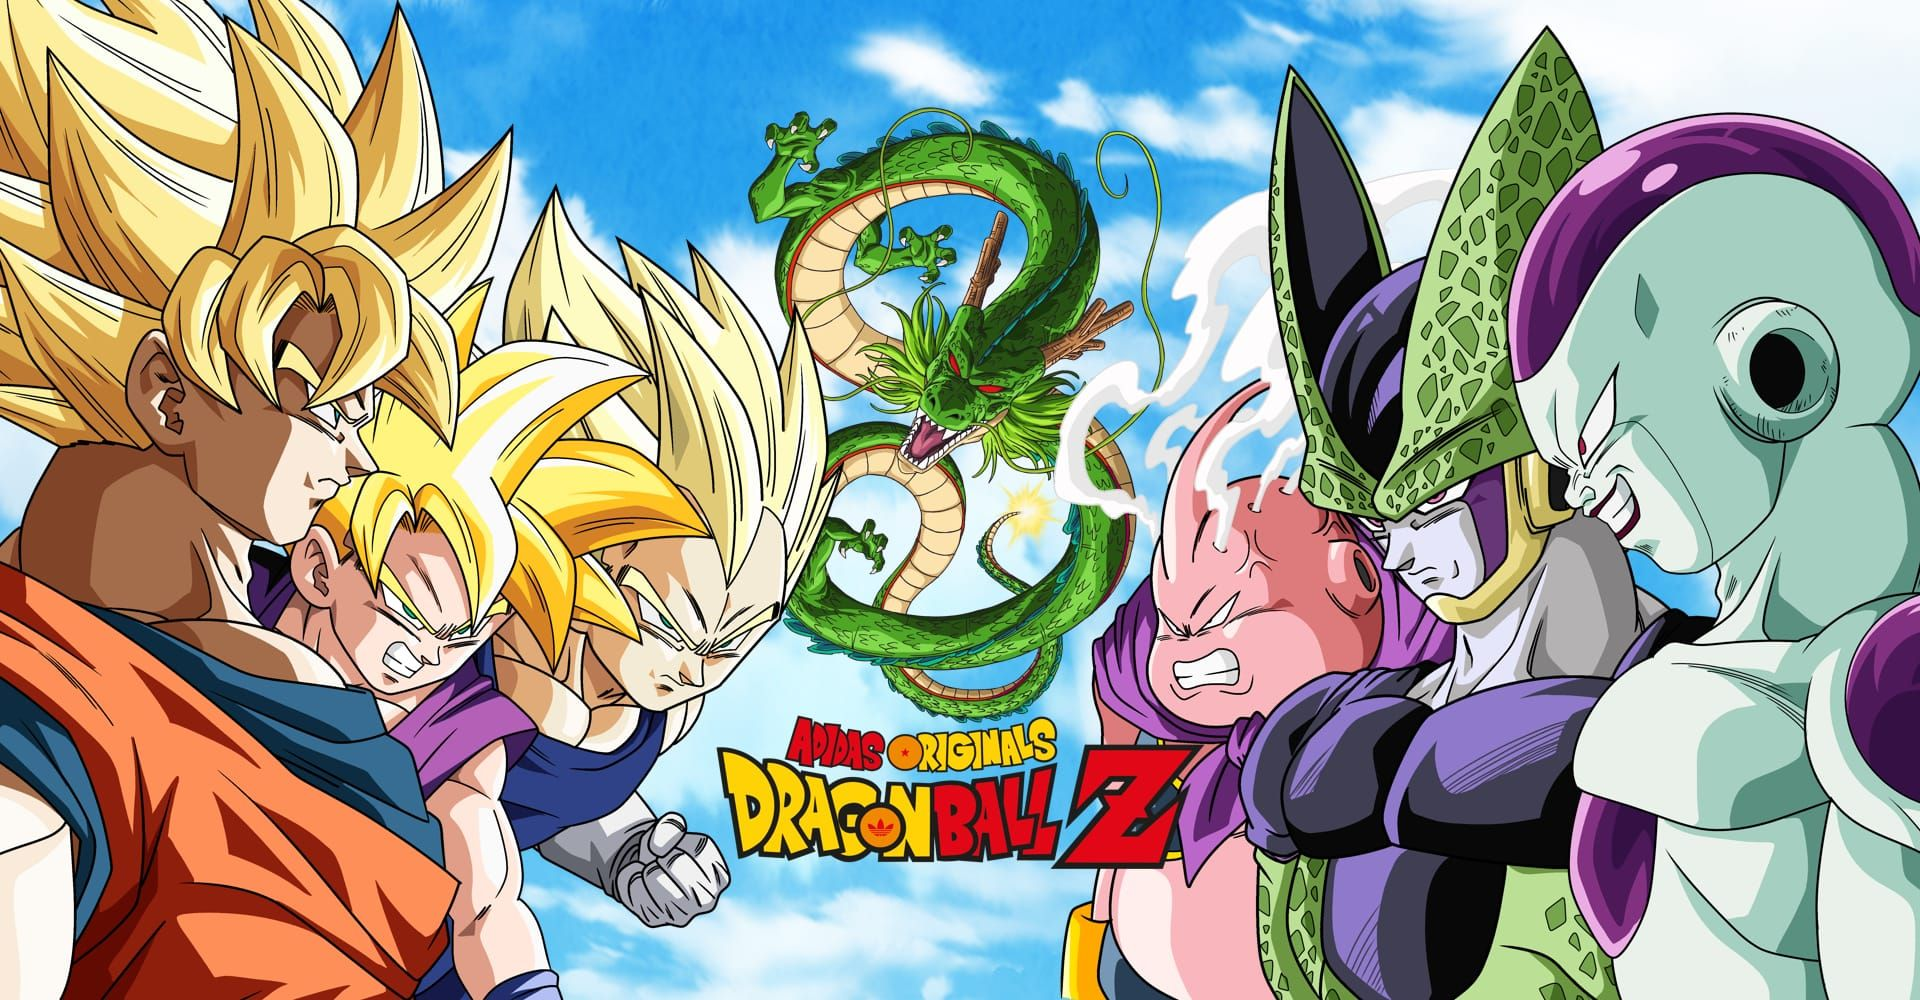 122c172d8aee I think it s cool that more games and anime are doing symphonic concerts  around the world. The latest franchise to get one is Dragon Ball.